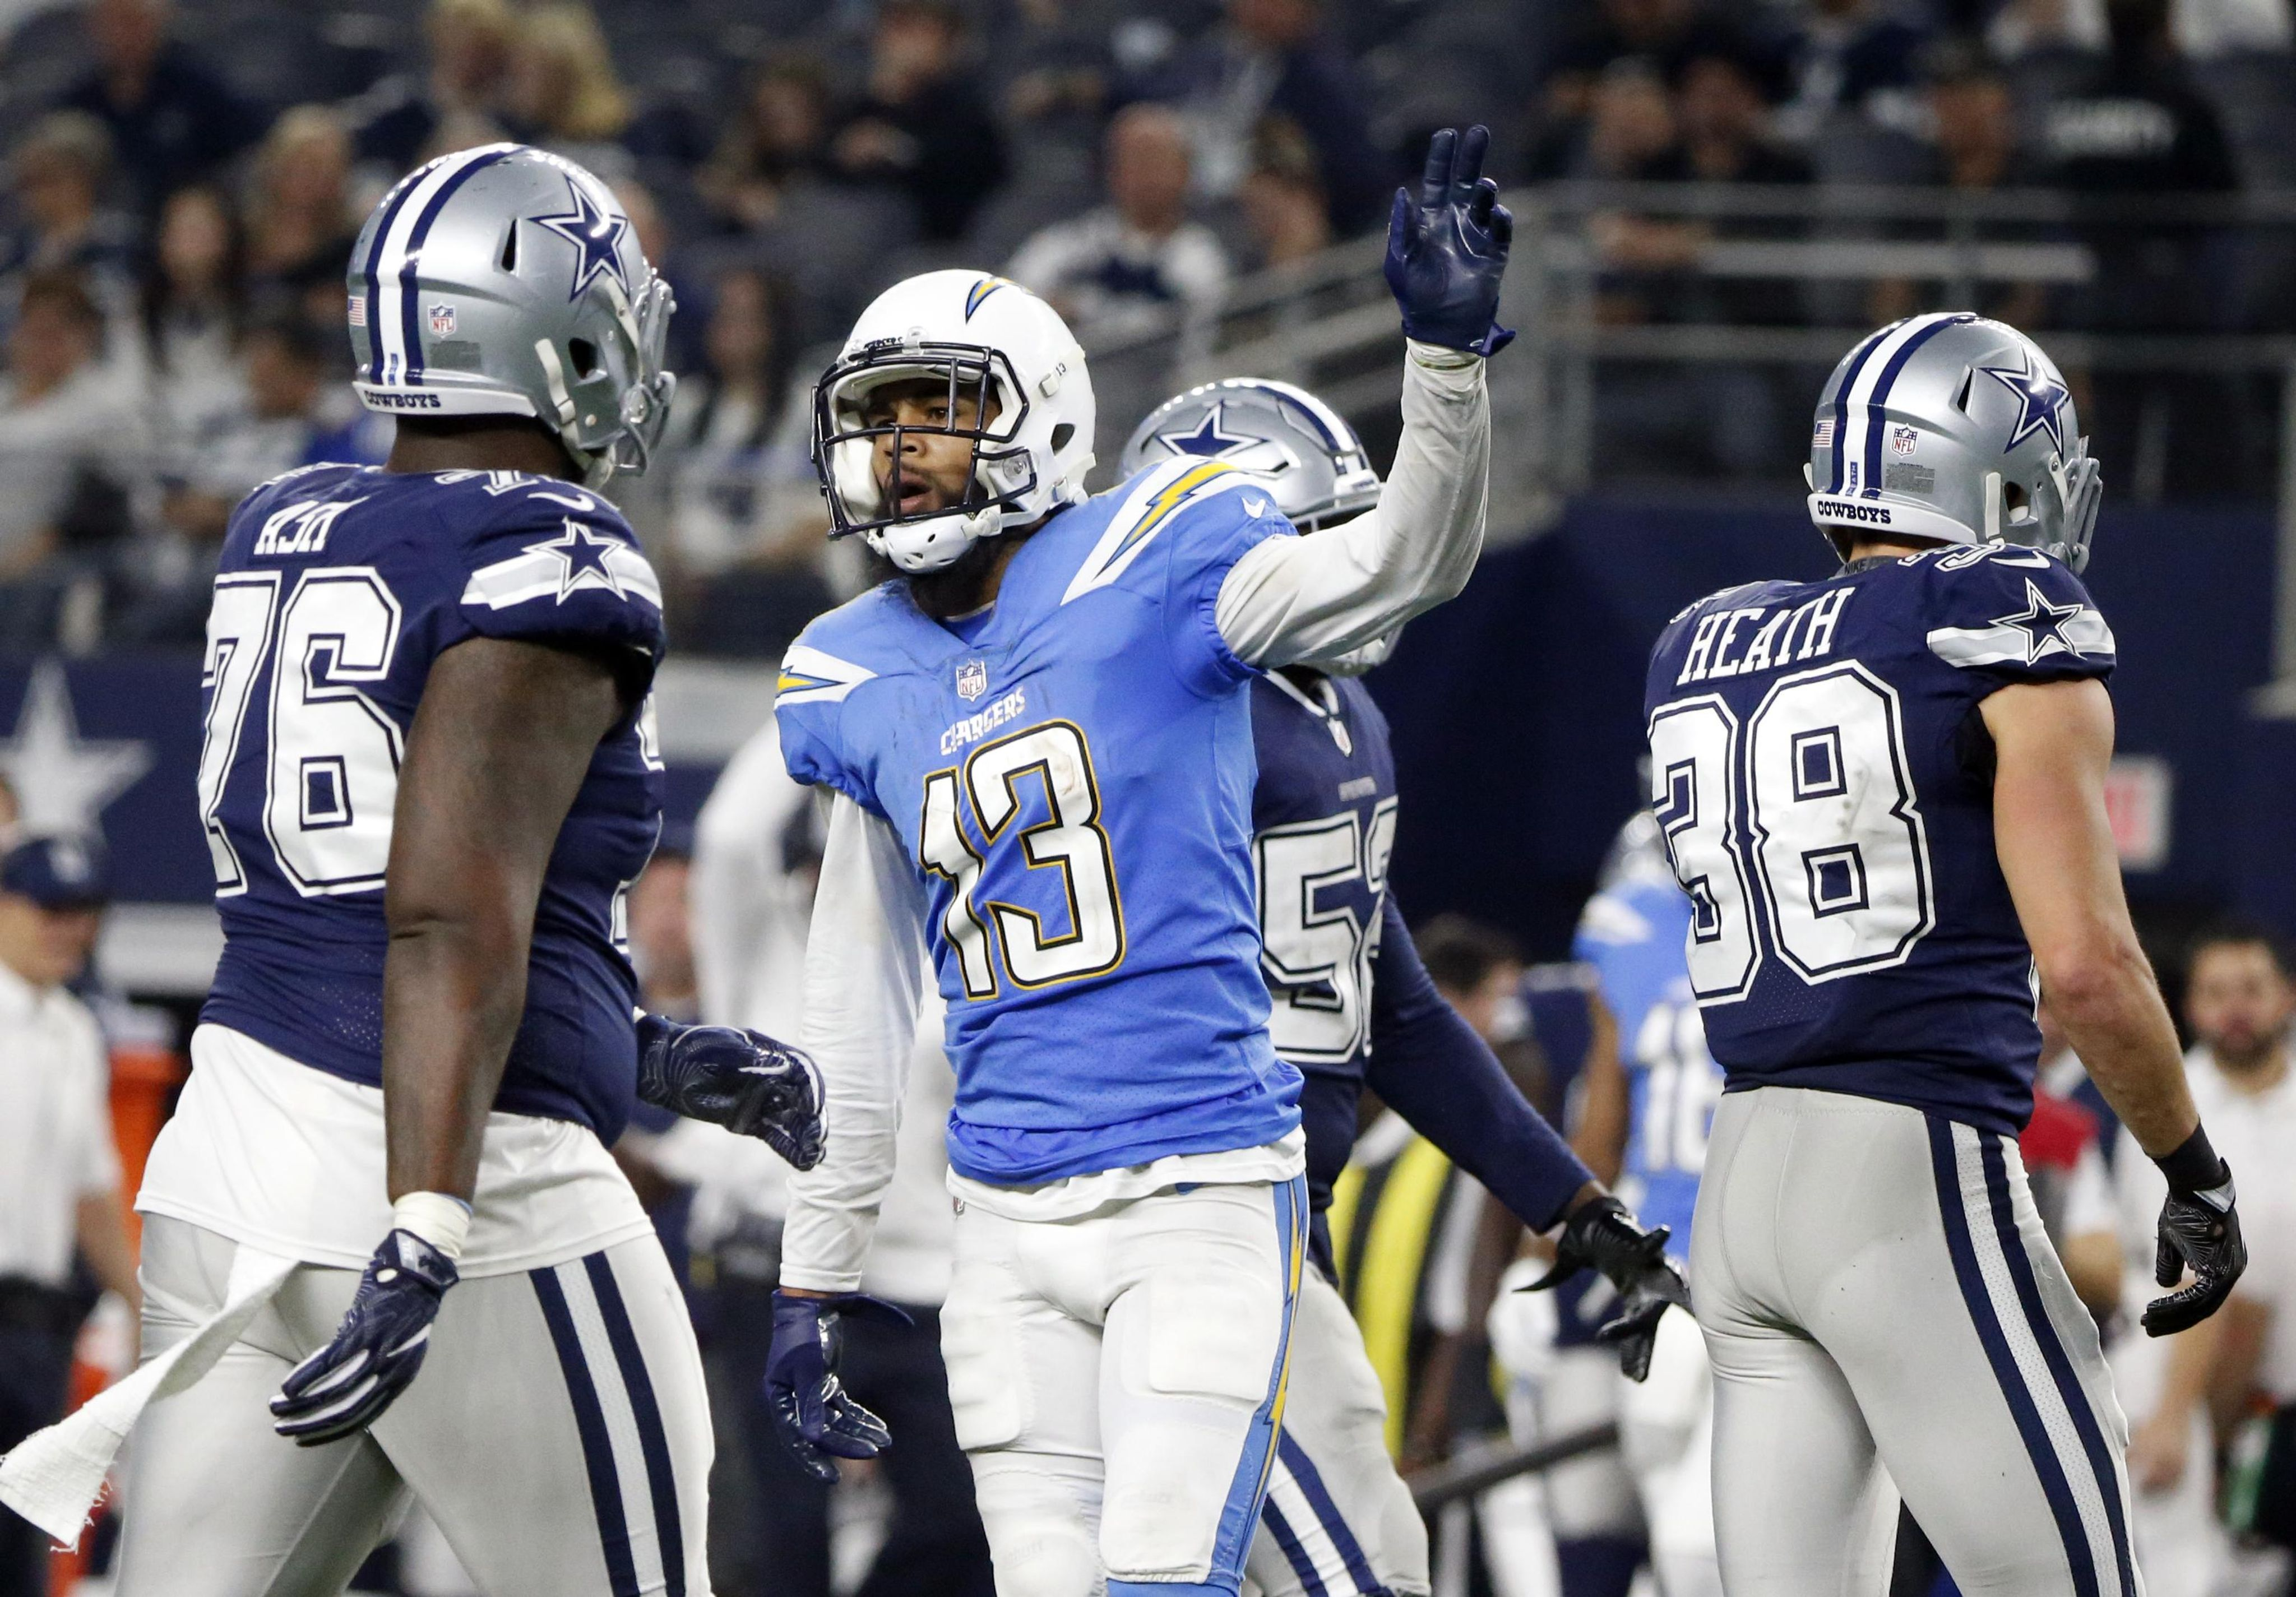 Chargers_cowboys_football_52799_s4096x2849